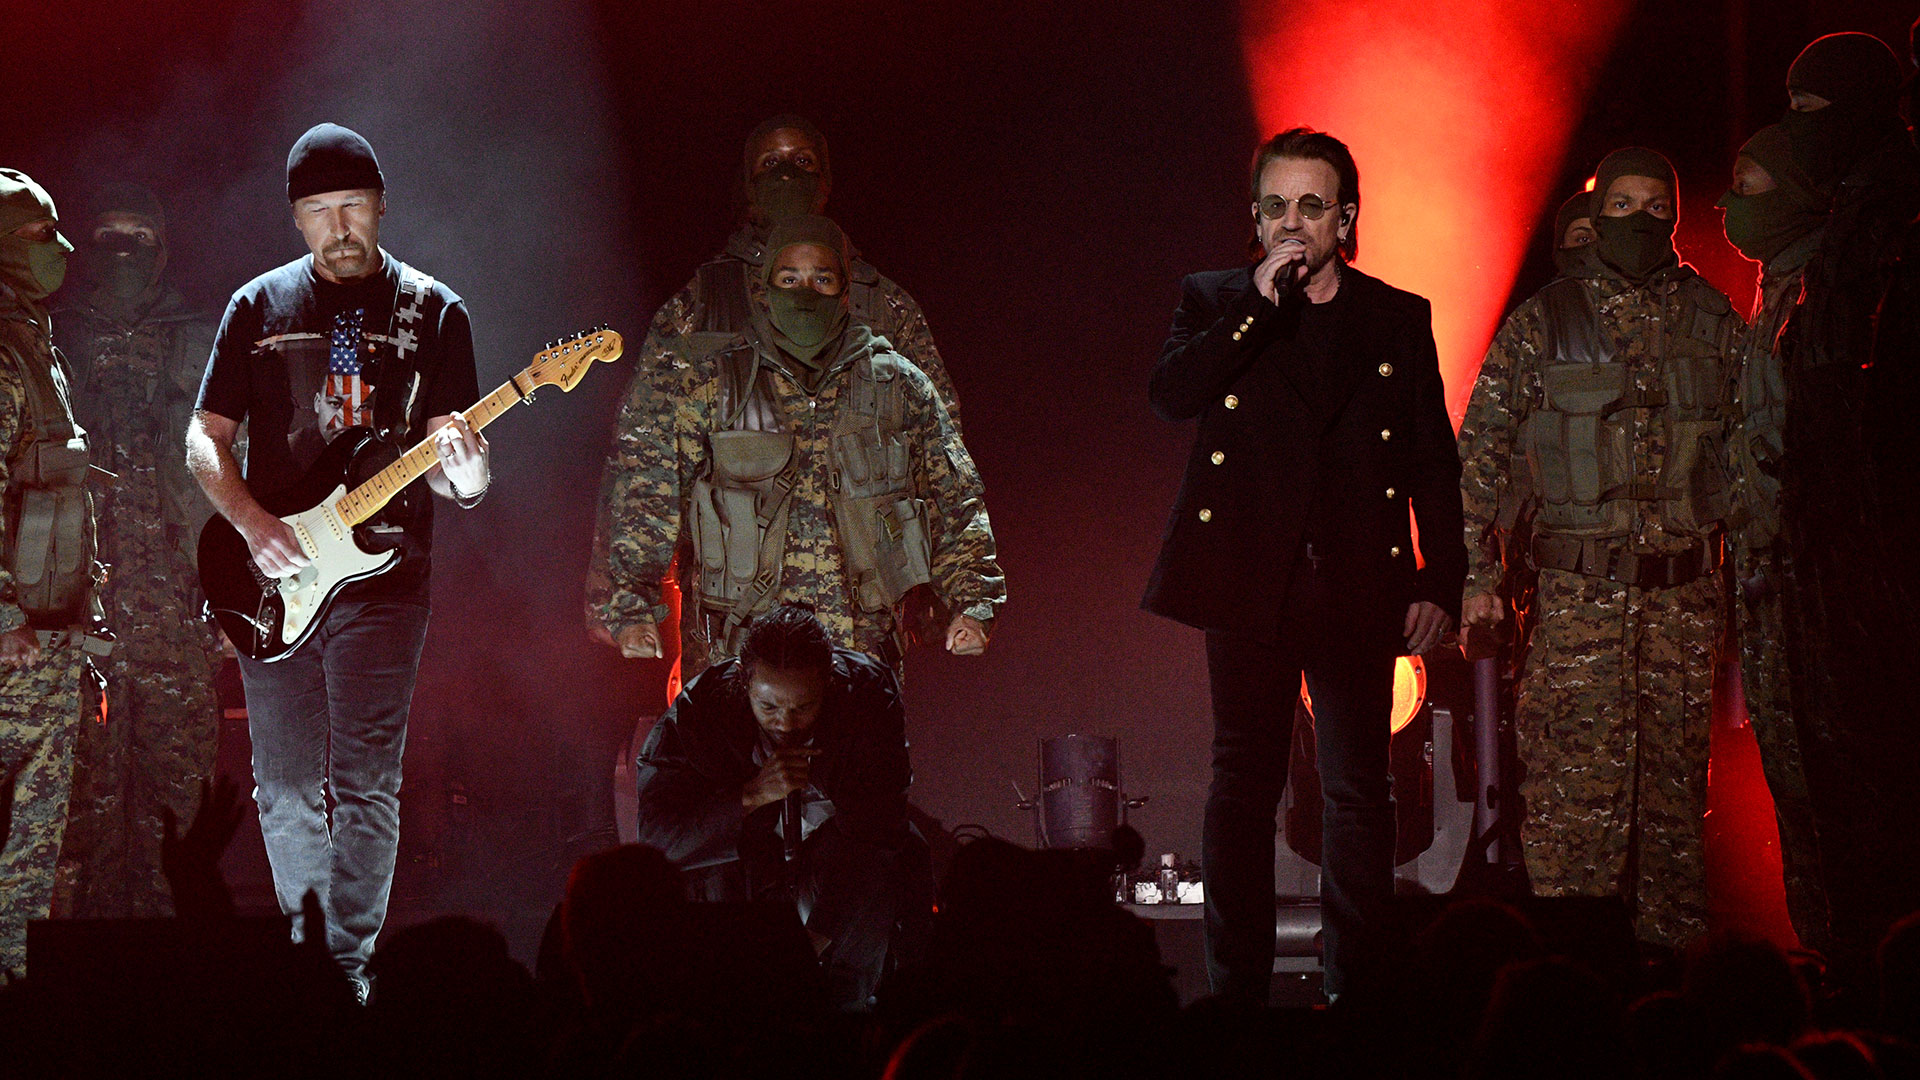 Kendrick Lamar opens the 60th Annual GRAMMY Awards with an assist from Dave Chappelle and Bono and The Edge of U2, performing